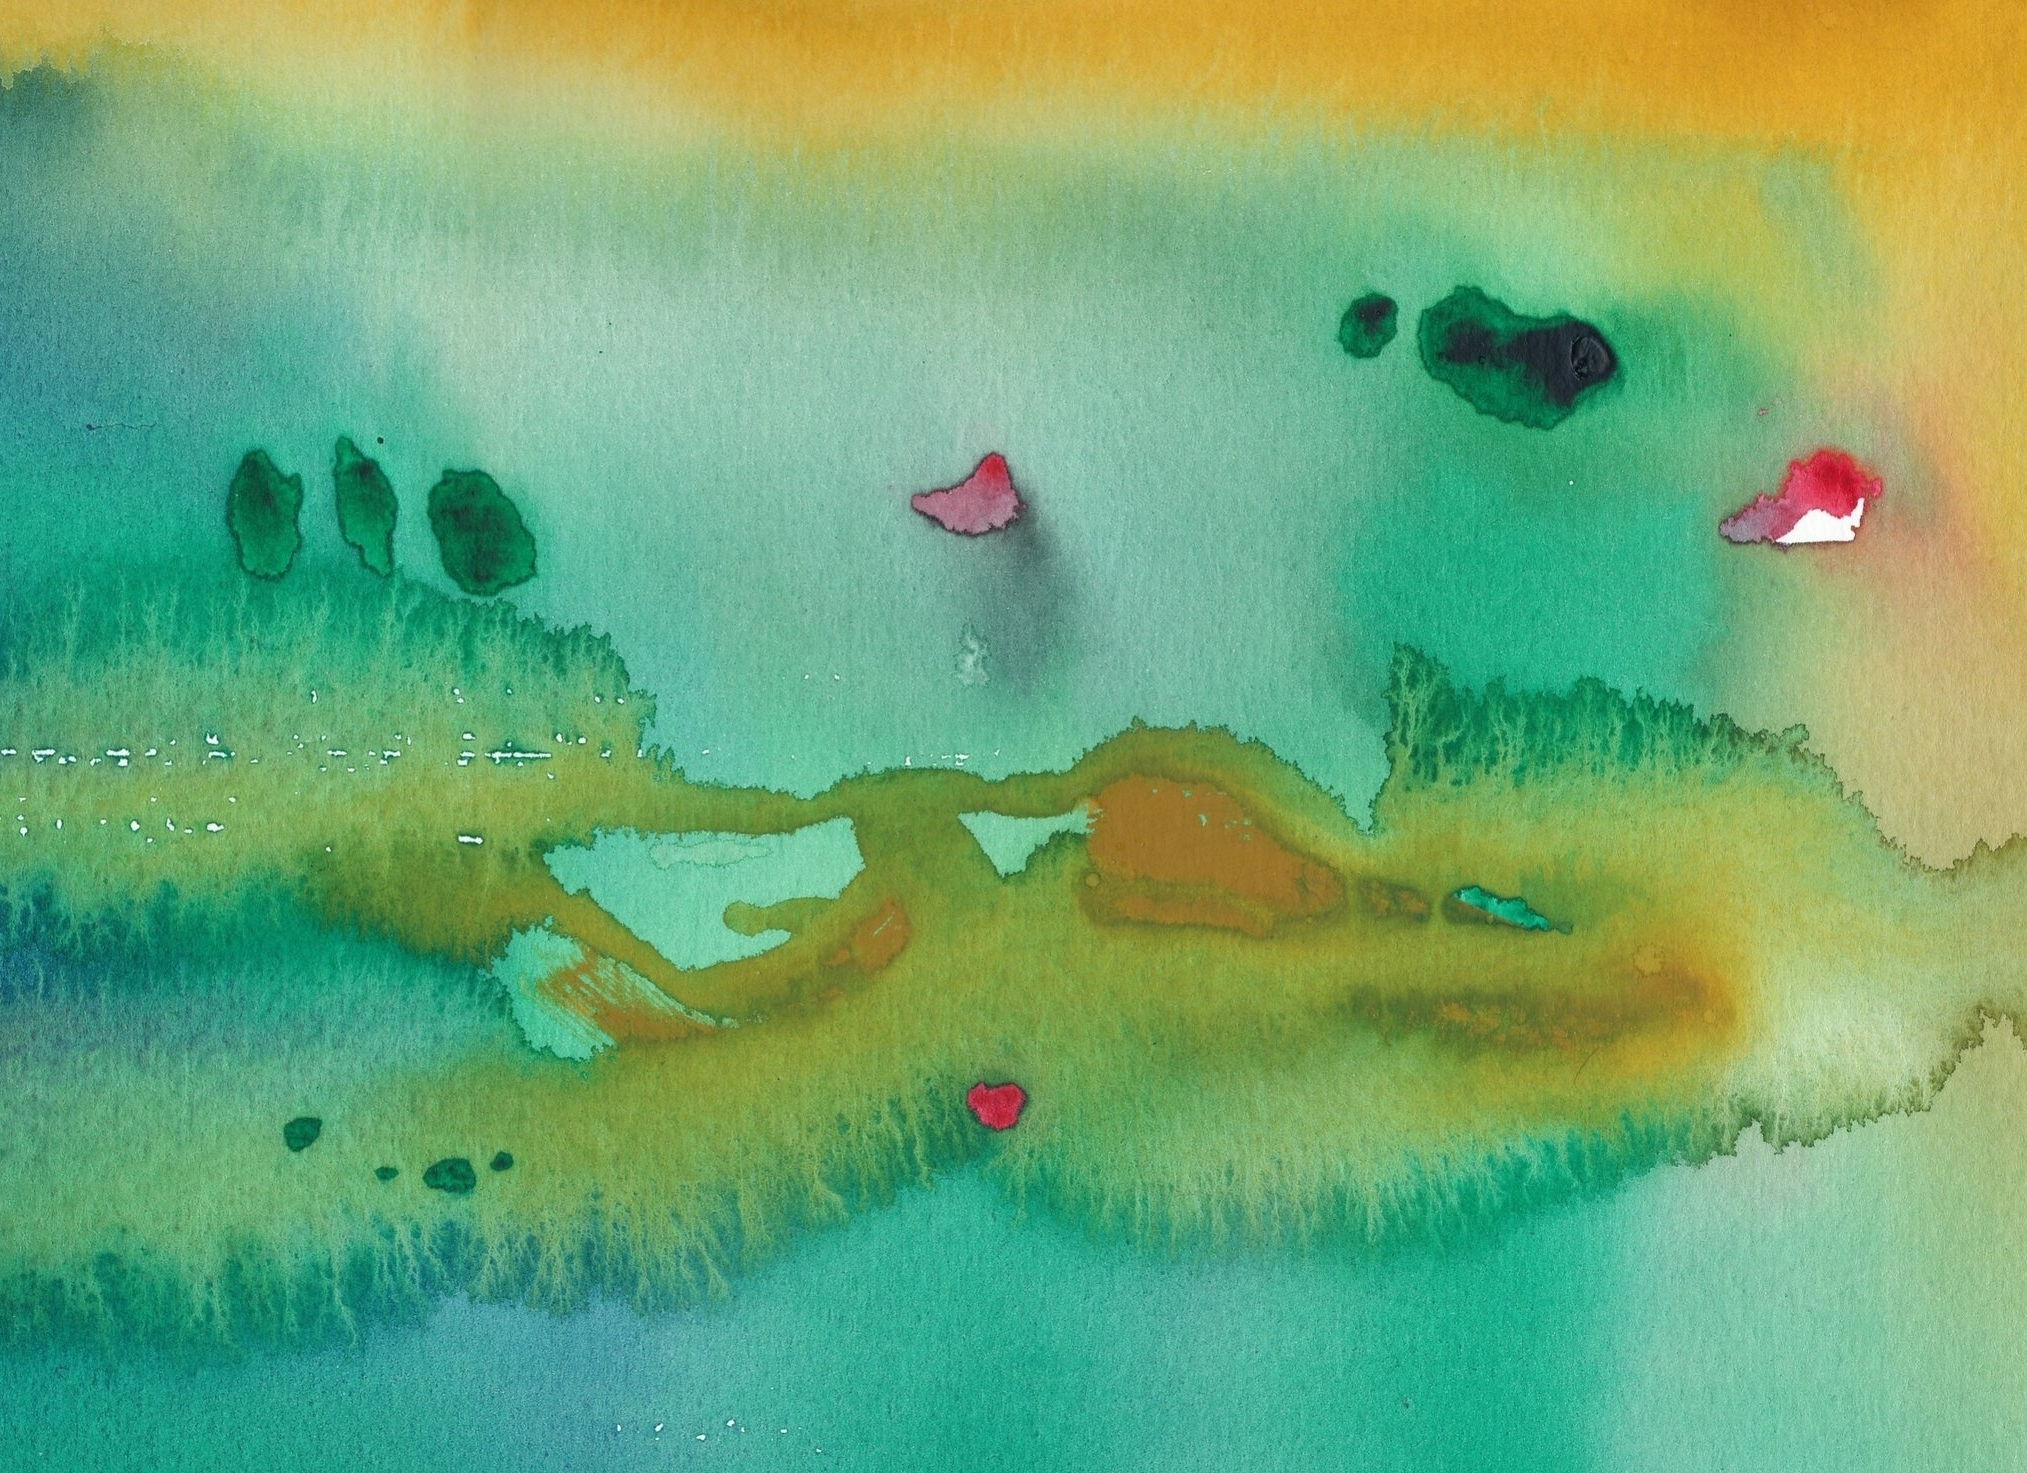 Fascinated by the creative process and the role intuition and imagination play, Debbie uses an intuitive process with watercolors and deep inquiry to help owners and individuals clarify and communicate their vision, values and purpose.